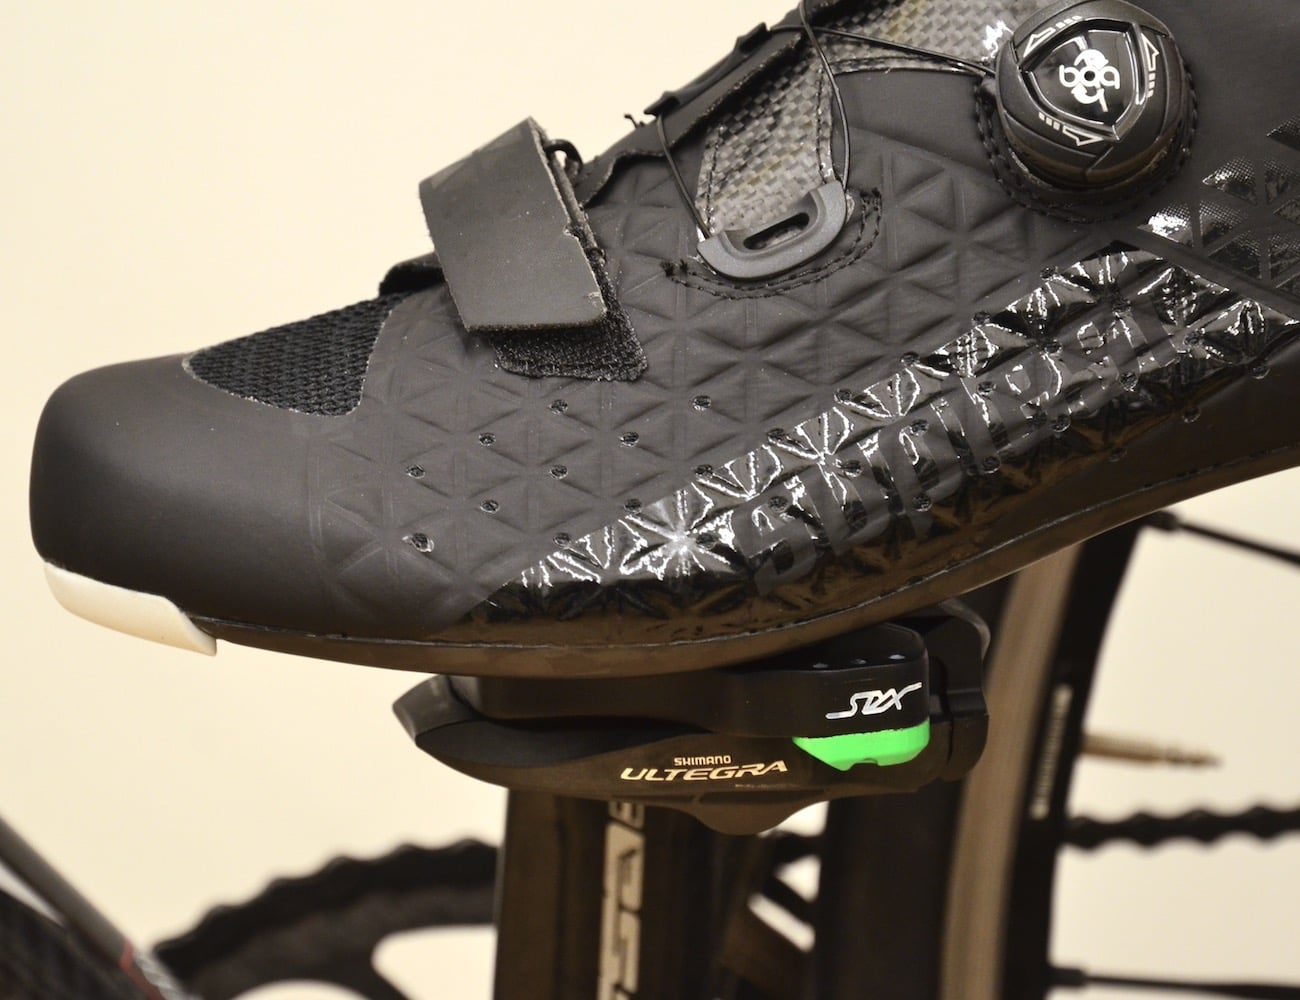 STYX Wearable Cycling Powermeter